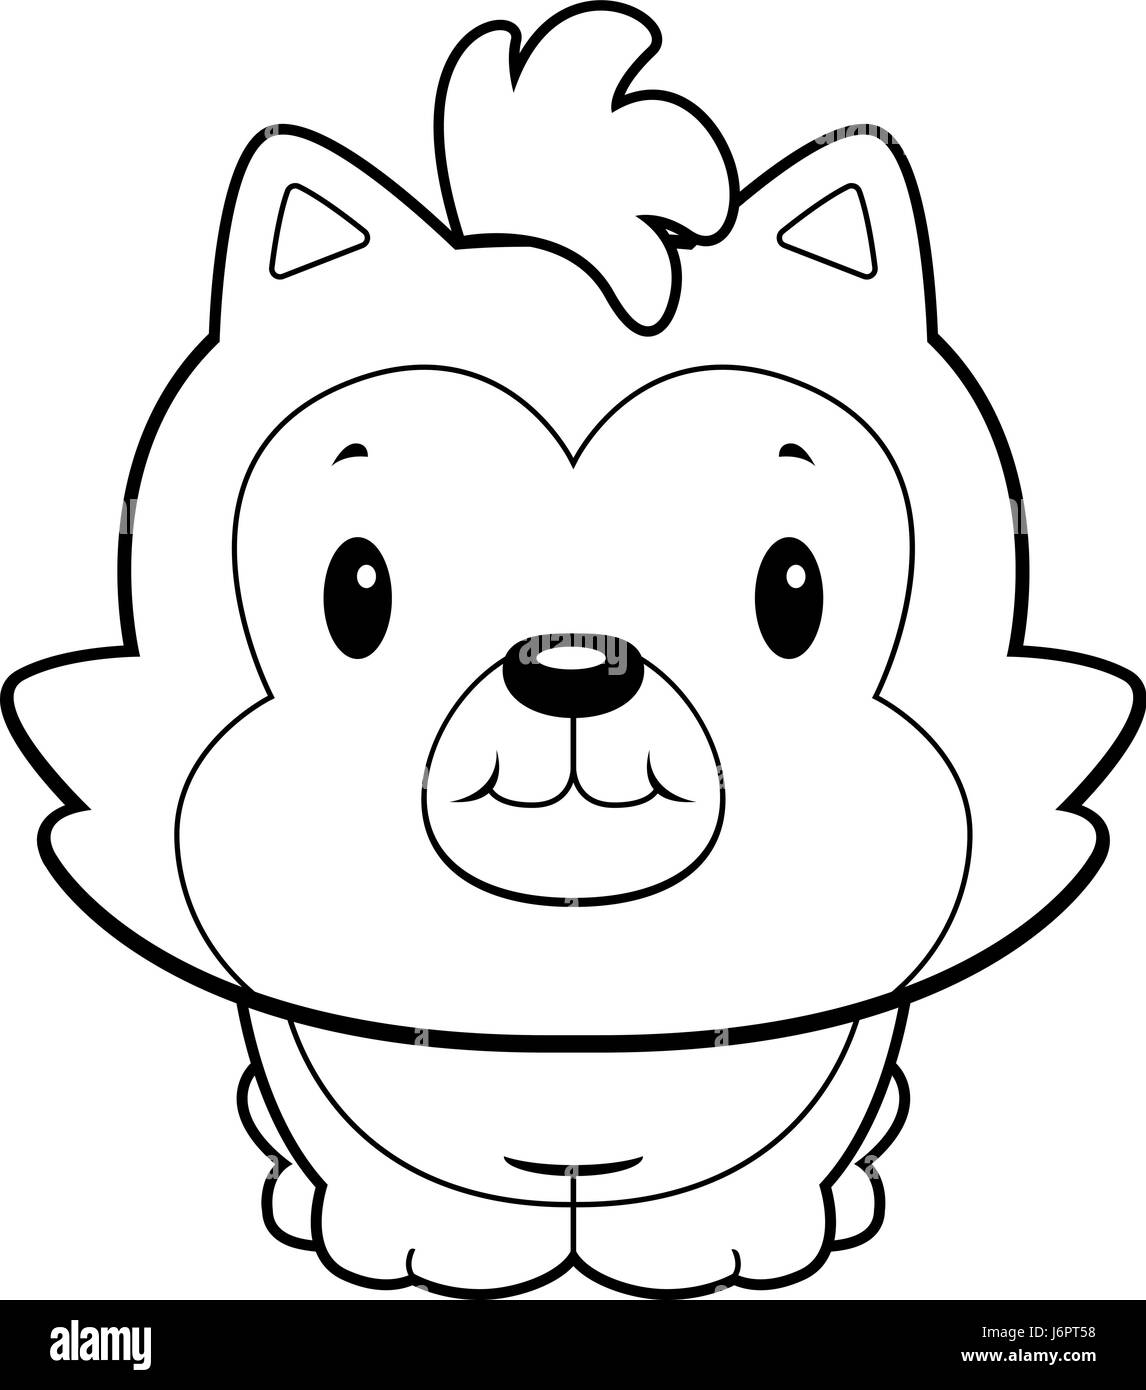 Uncategorized Cartoon Baby Wolf a happy cartoon baby wolf standing and smiling stock vector art smiling